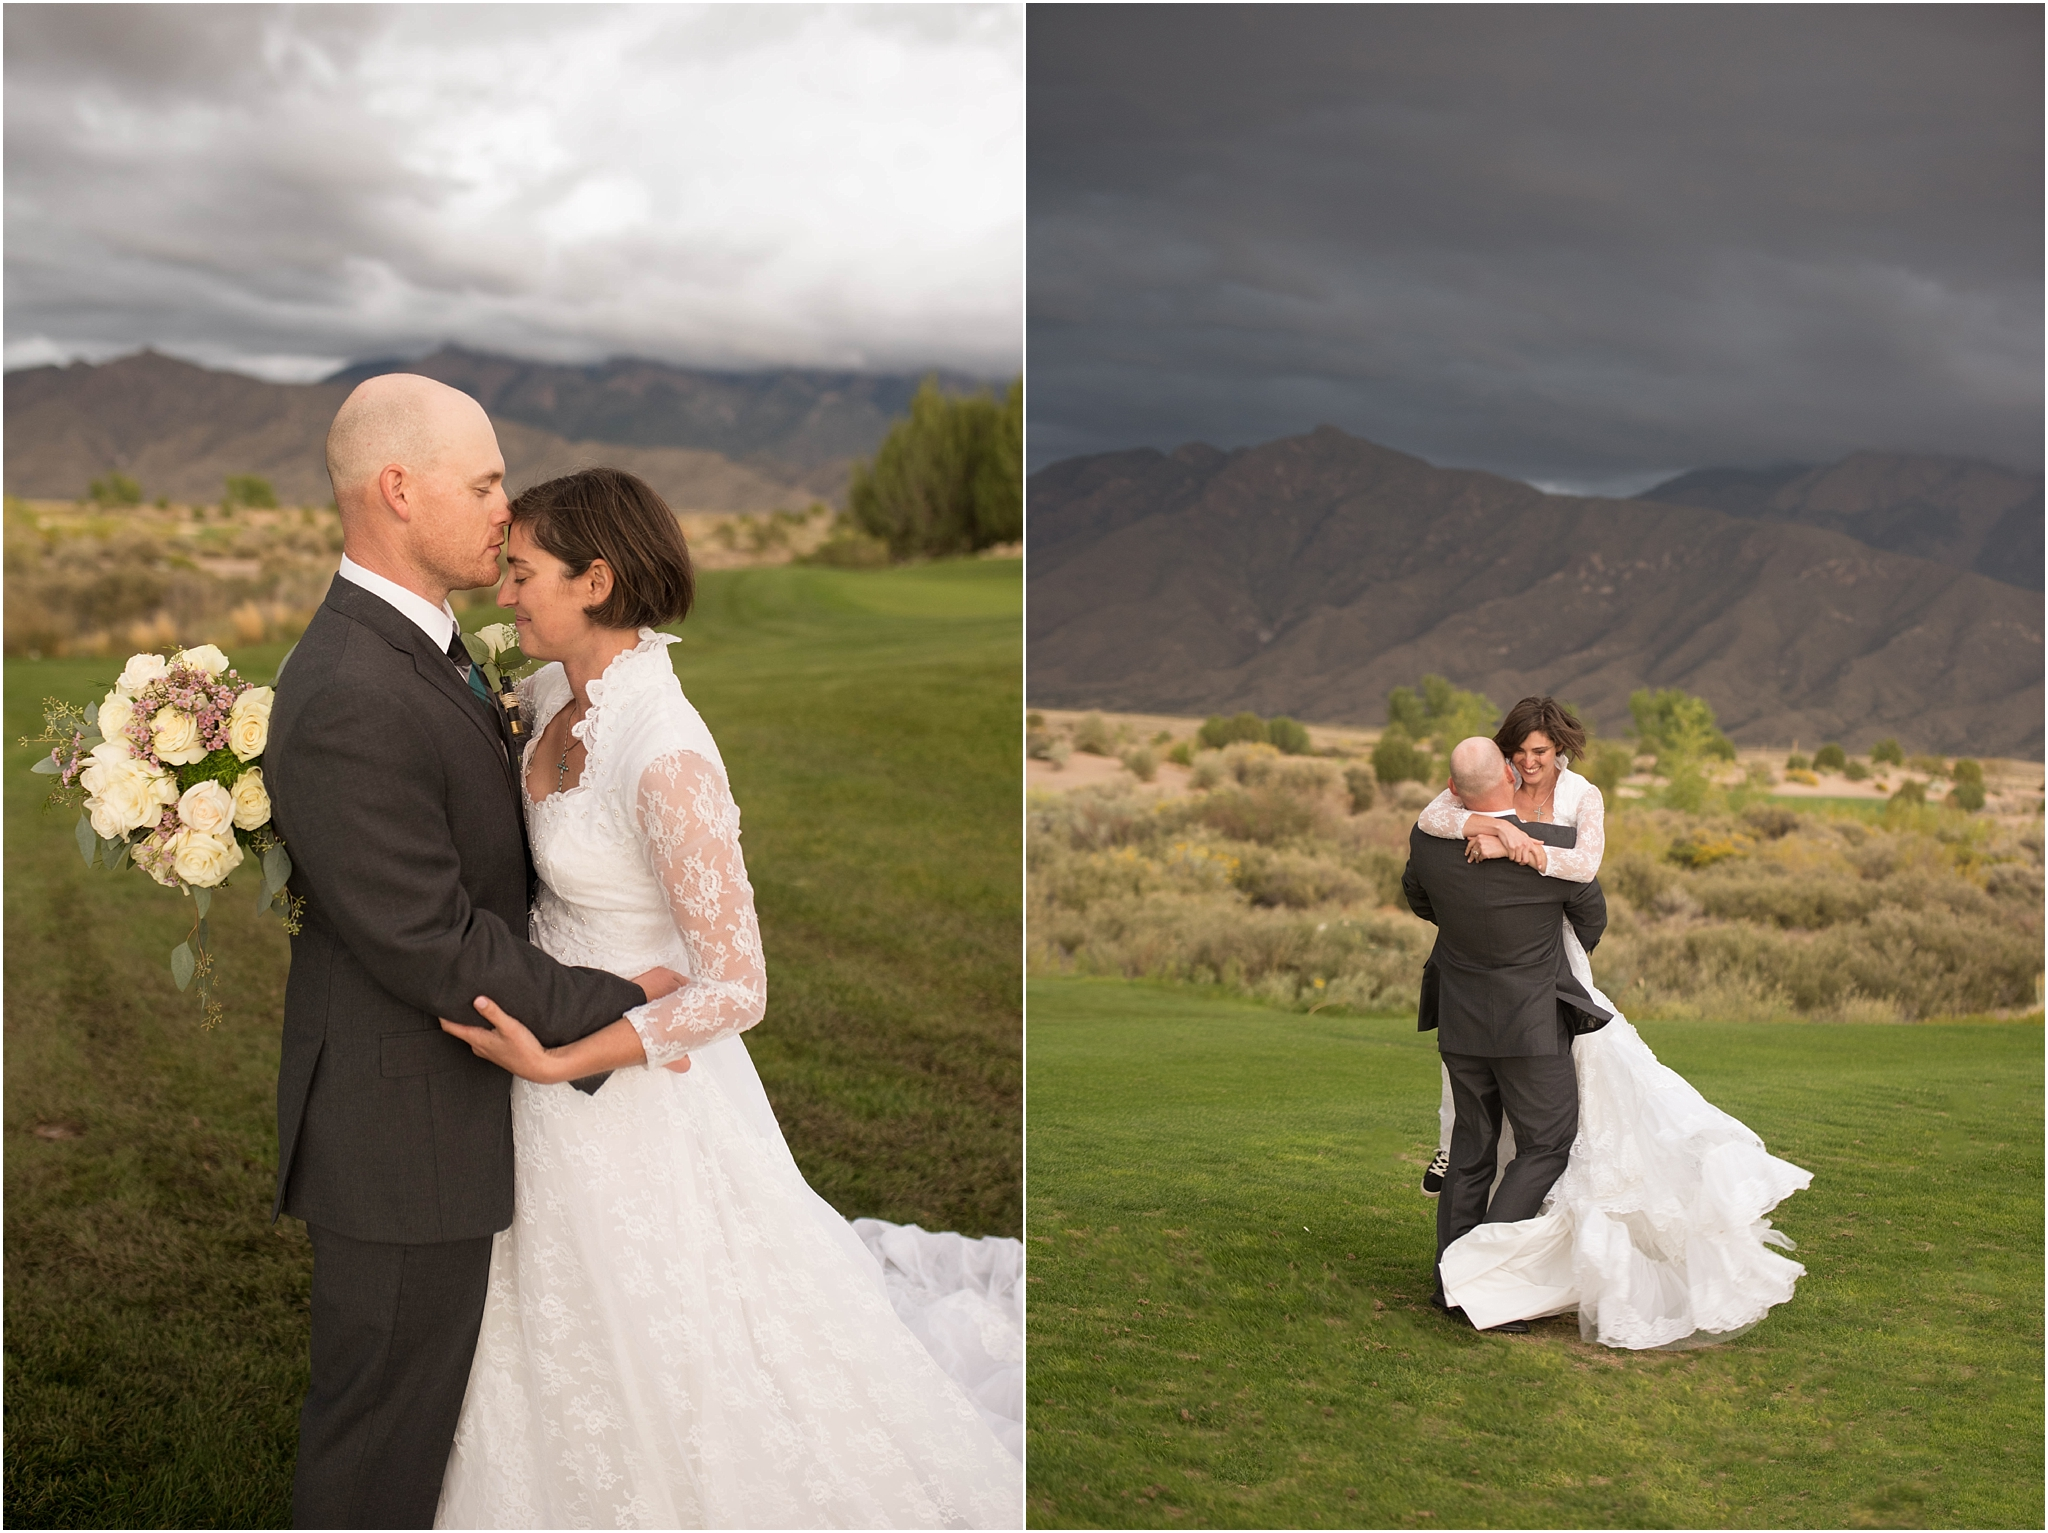 kayla kitts photography - new mexico wedding photographer - albuquerque botanic gardens - hotel albuquerque-casa de suenos_0228.jpg